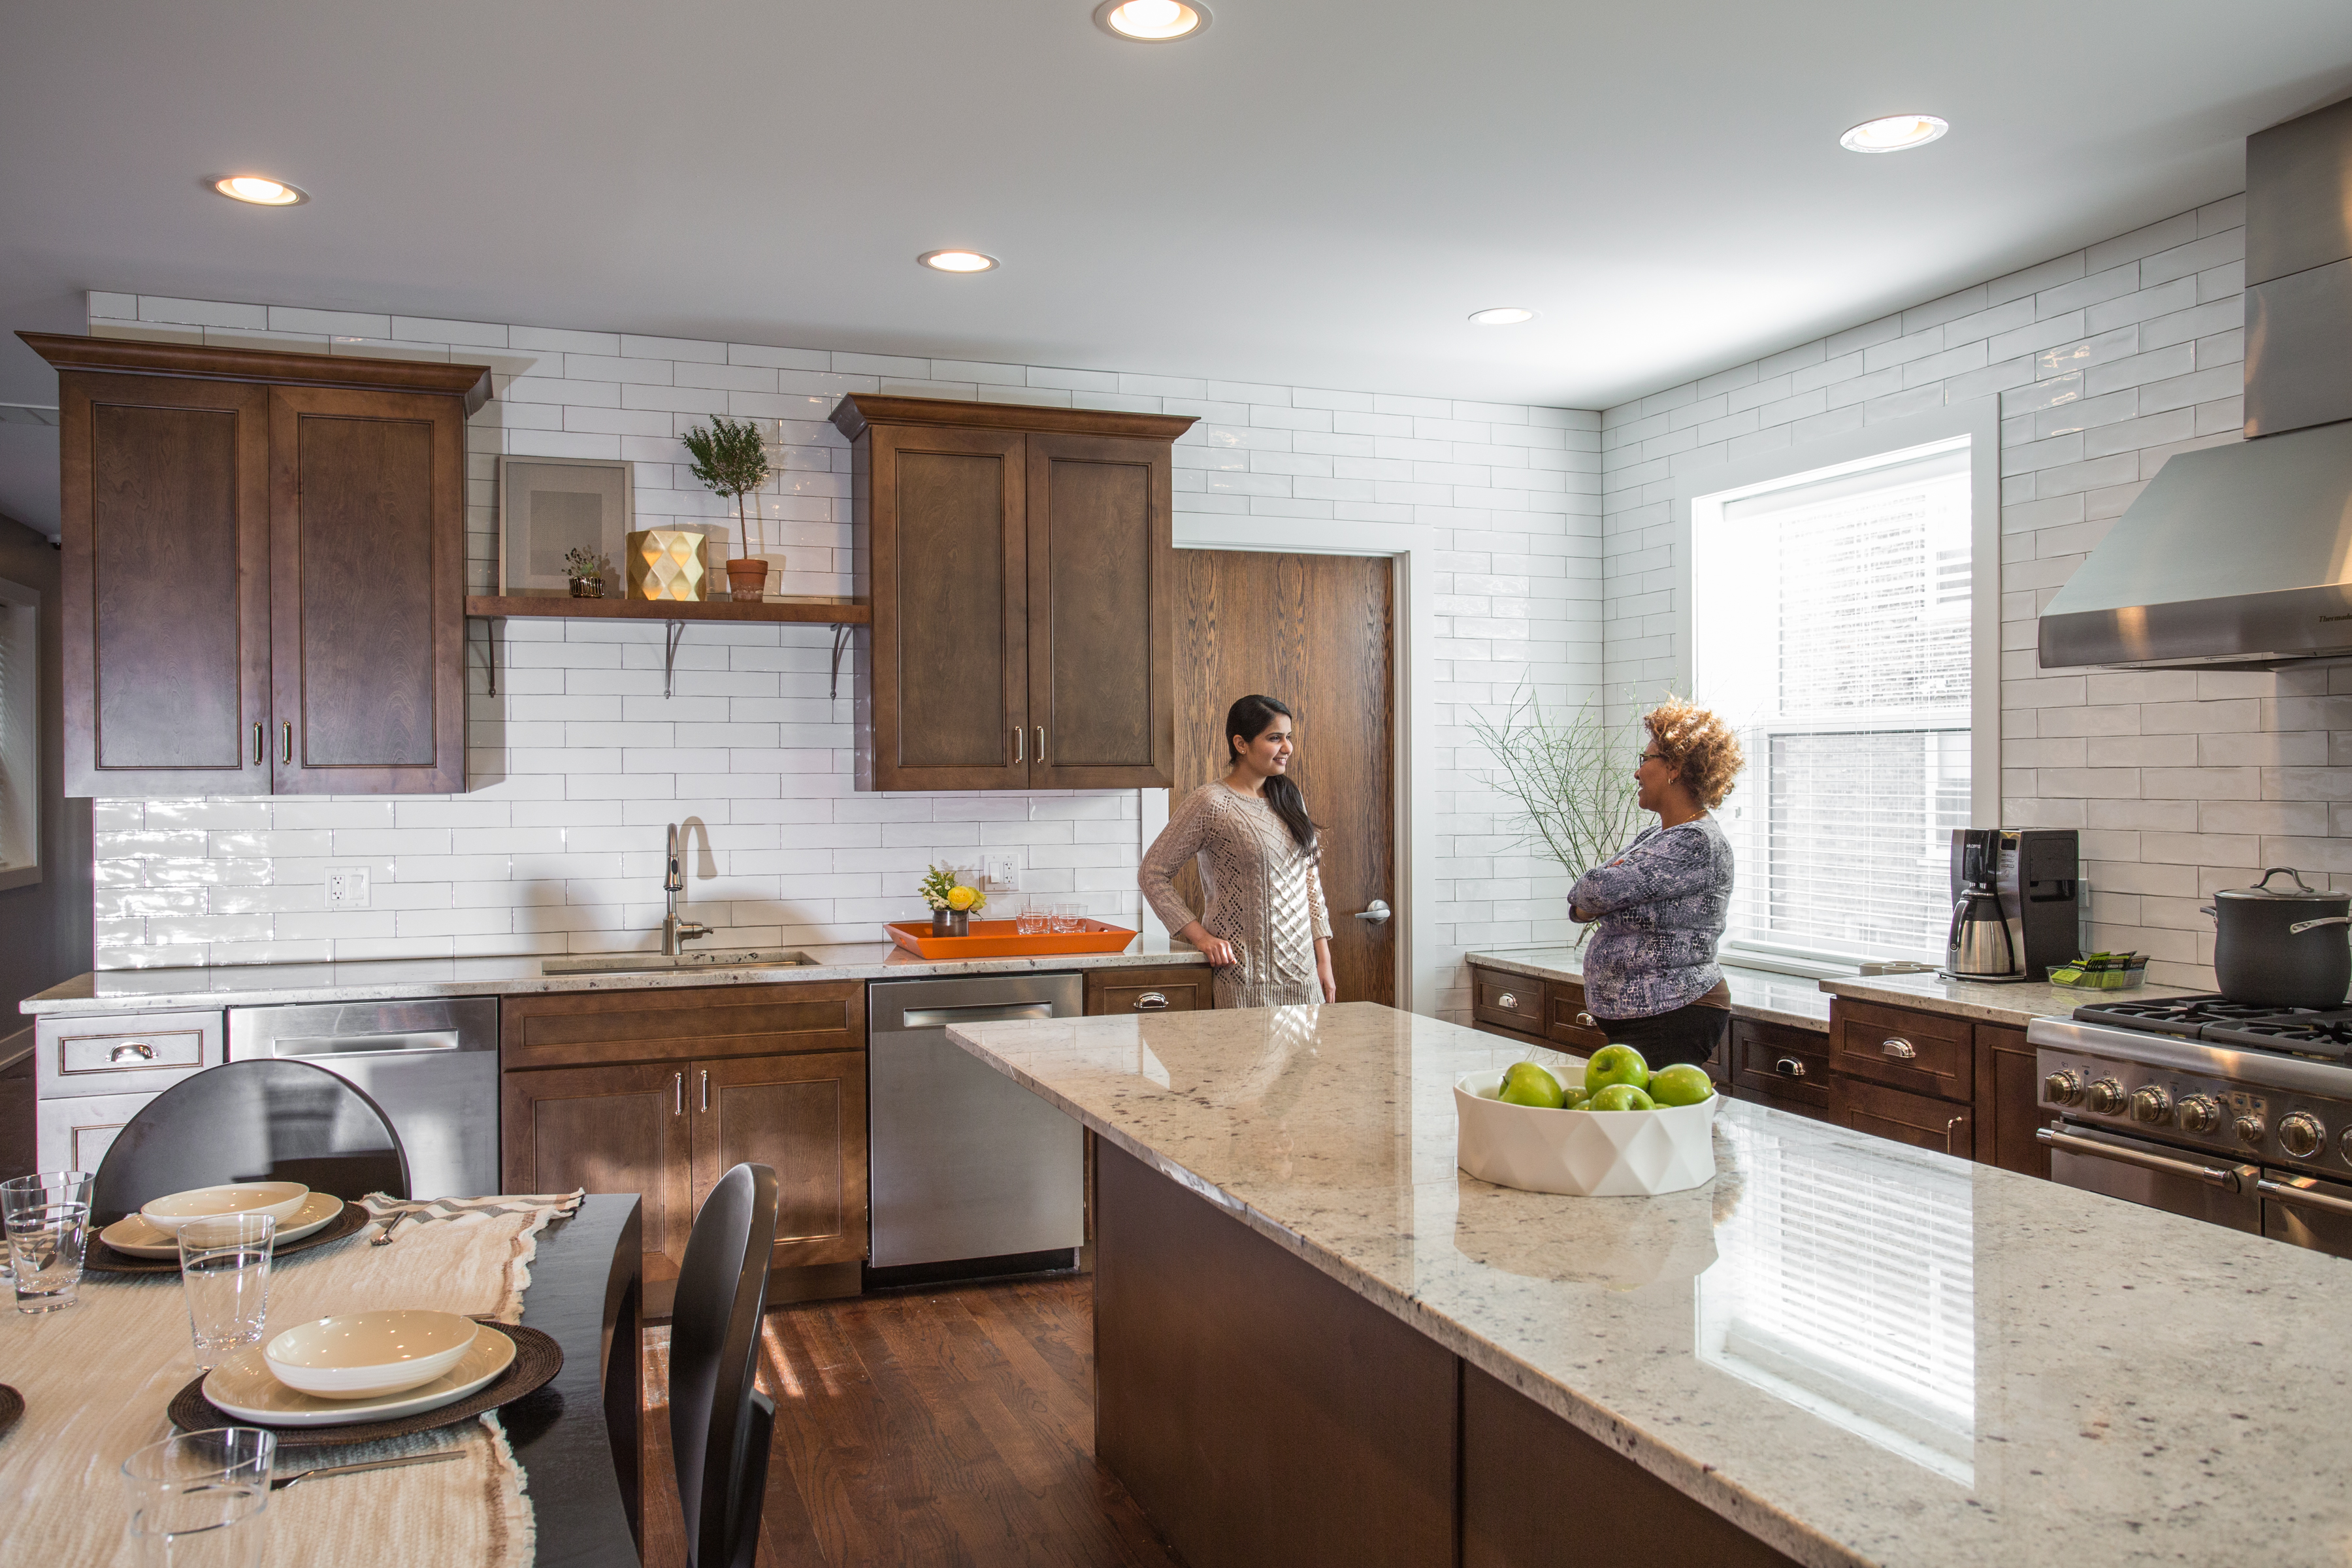 Two people talking in a kitchen